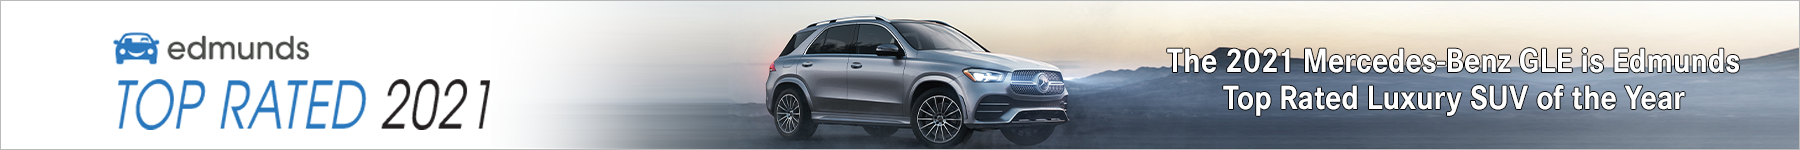 GLE Edmunds Top Rated Banner 1800×150